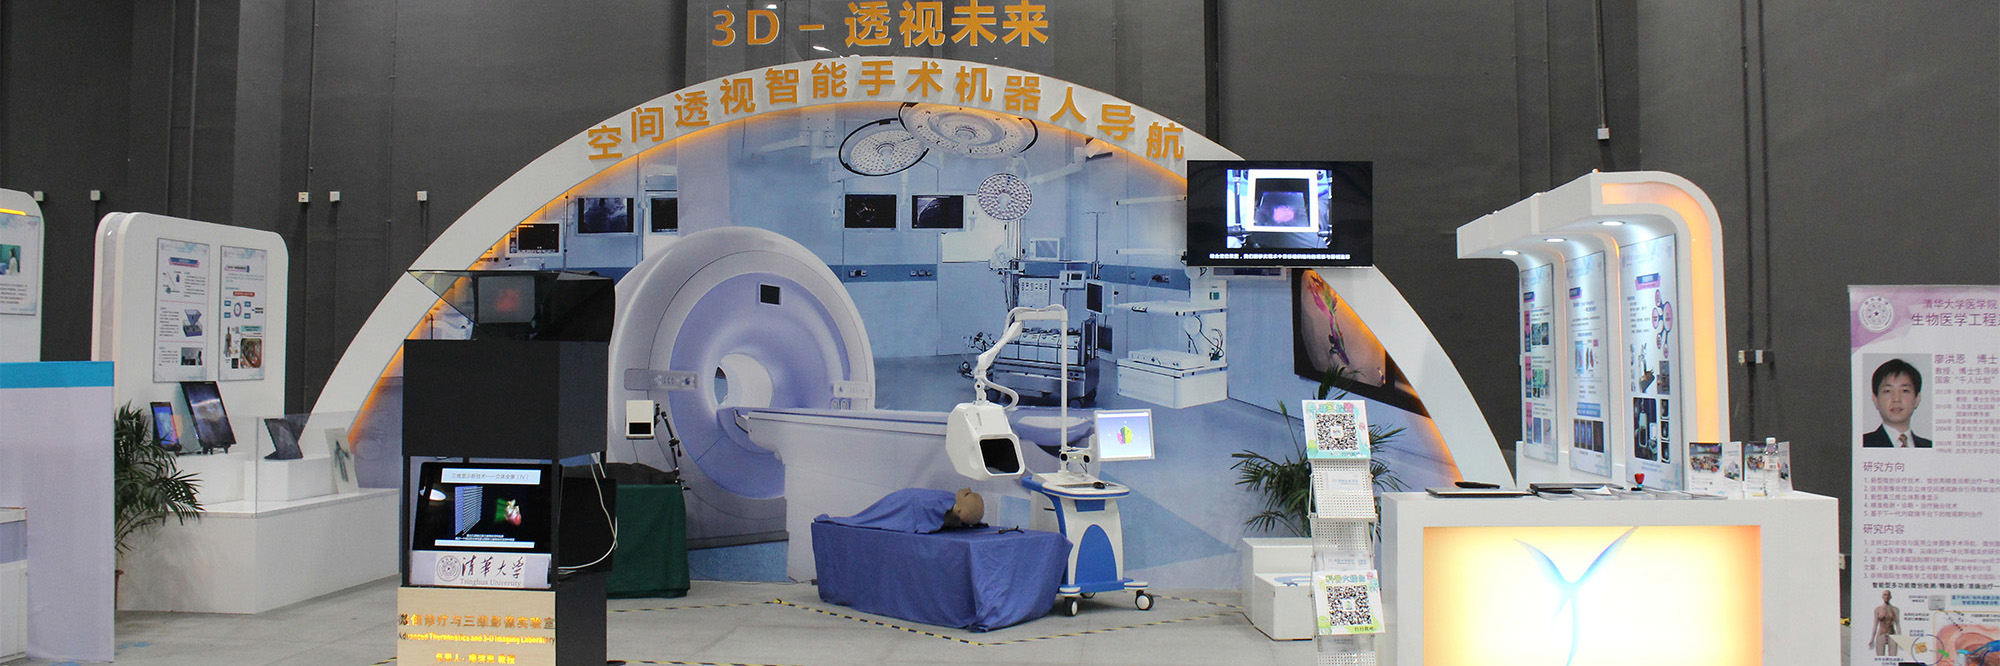 3D Medical Image Exhibition